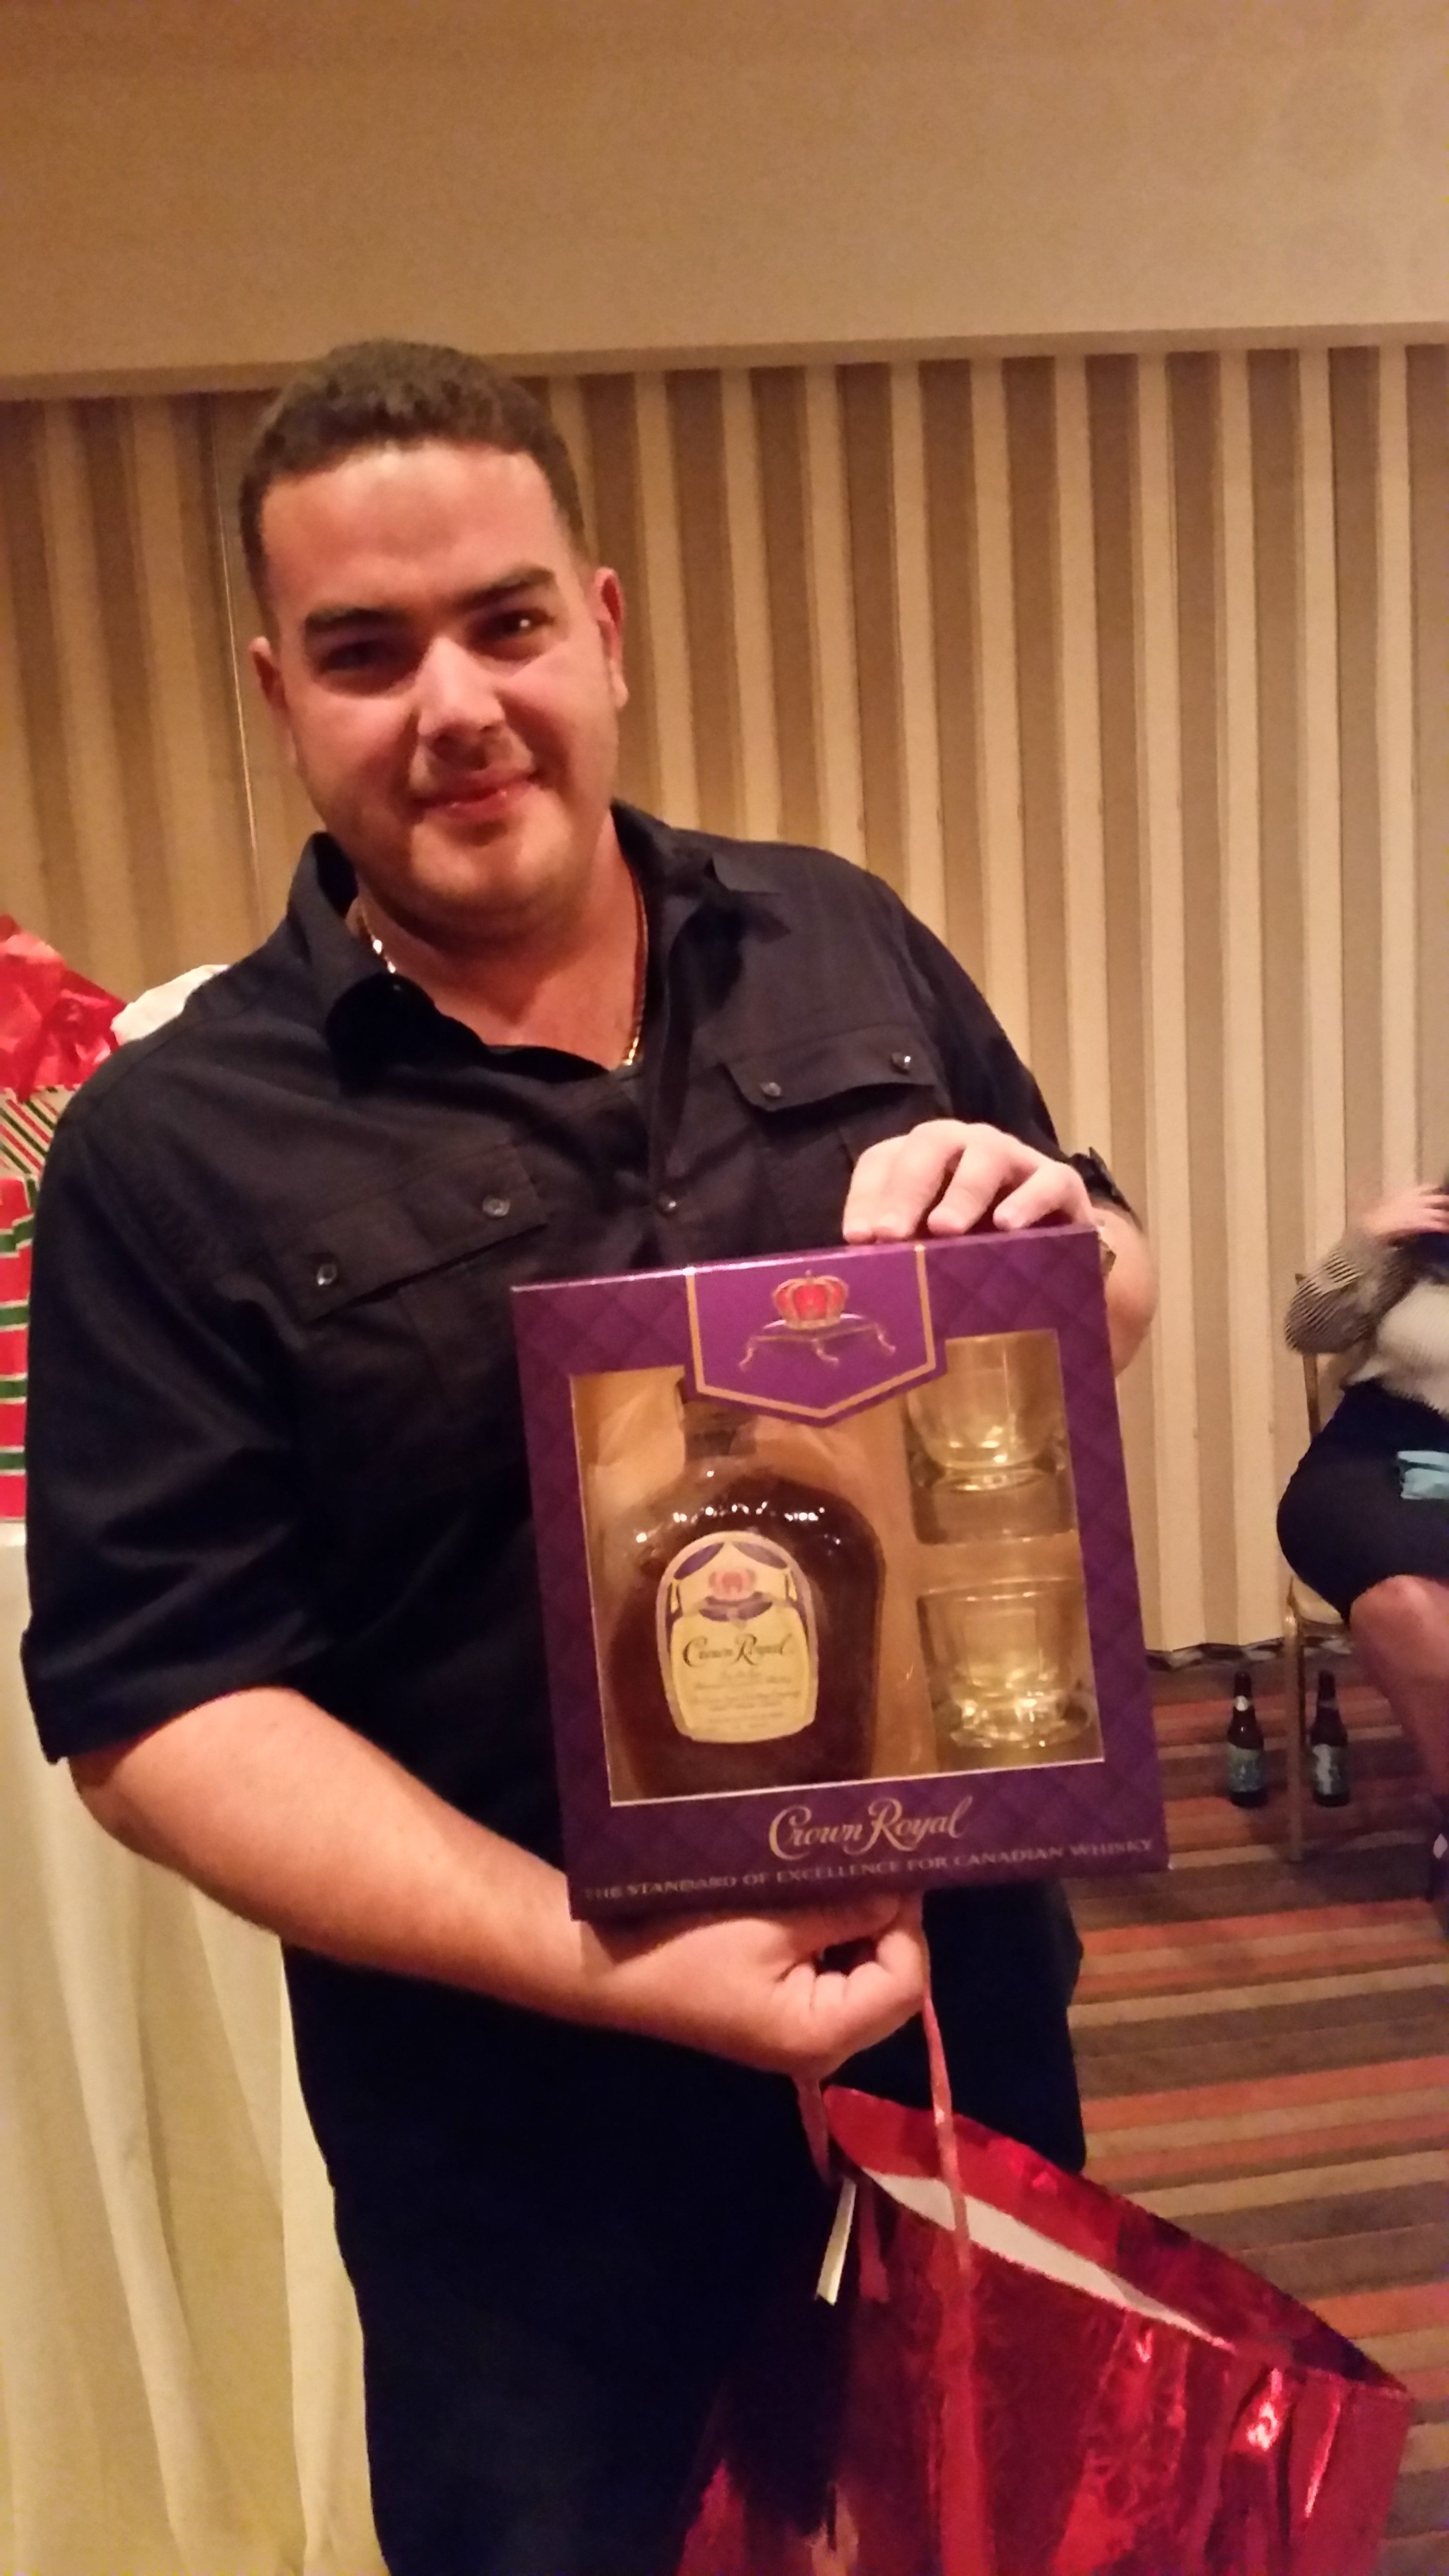 Our Director of Search Engine Marketing, Manny with his gift from the 2015 #TeamRand Holiday Party